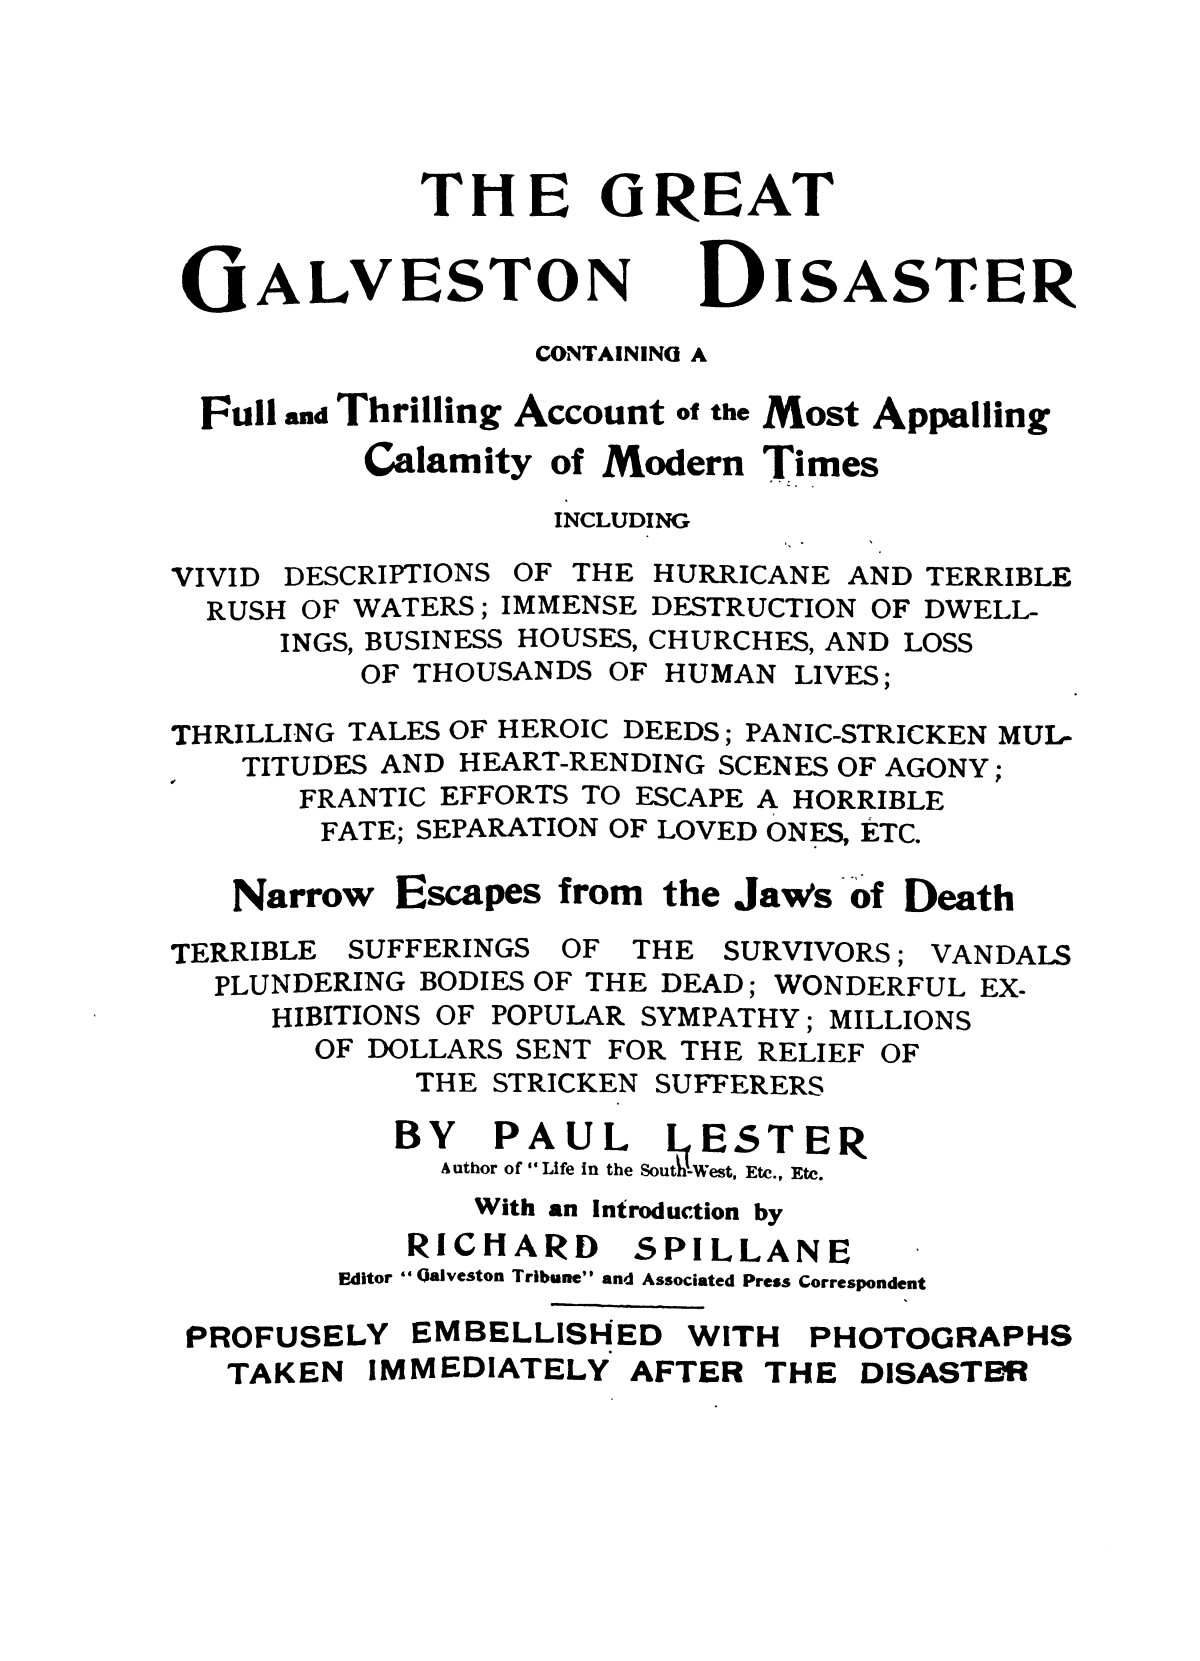 The great Galveston disaster, containing a full and thrilling account of the most appalling calamity of modern times including vivid descriptions of the hurricane                                                                                                      None